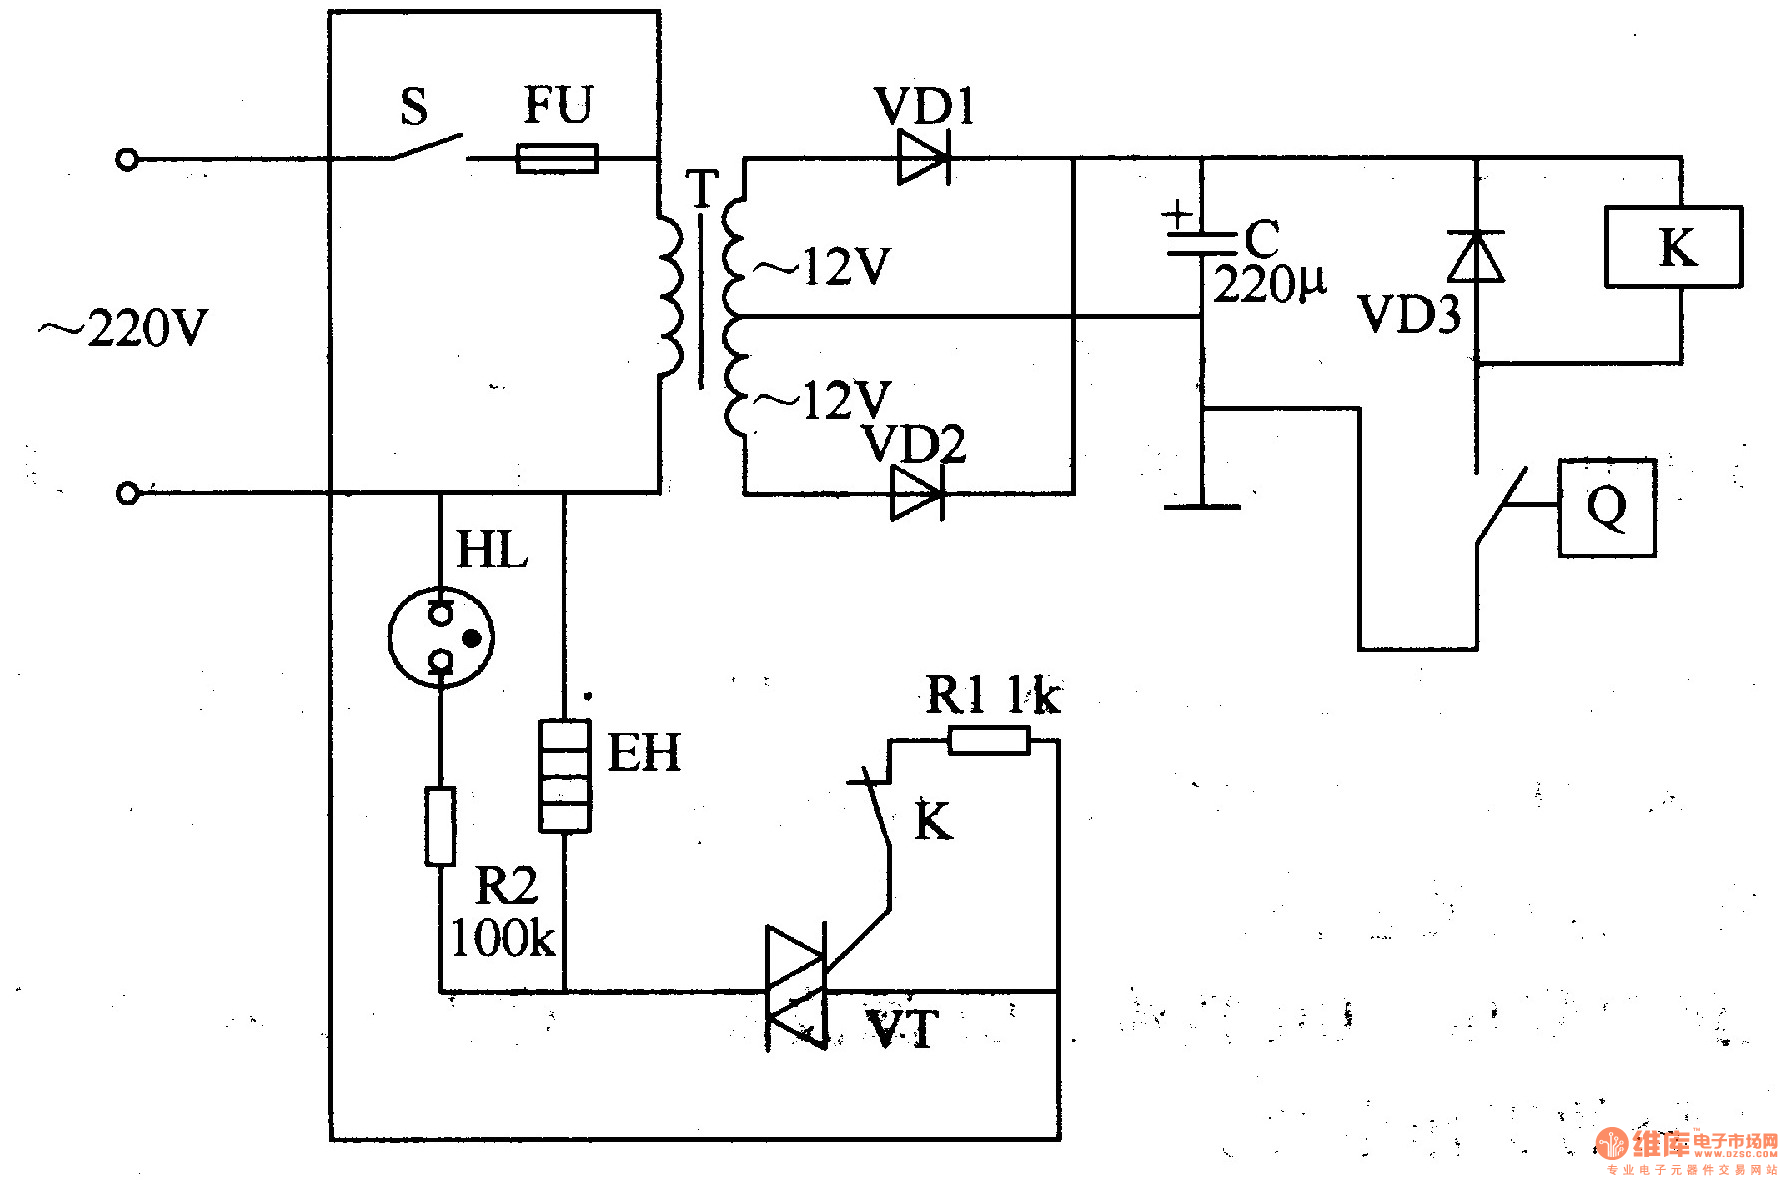 electric oven wiring diagrams yh 5368  electric oven wiring diagram pictures download diagram  electric oven wiring diagram pictures